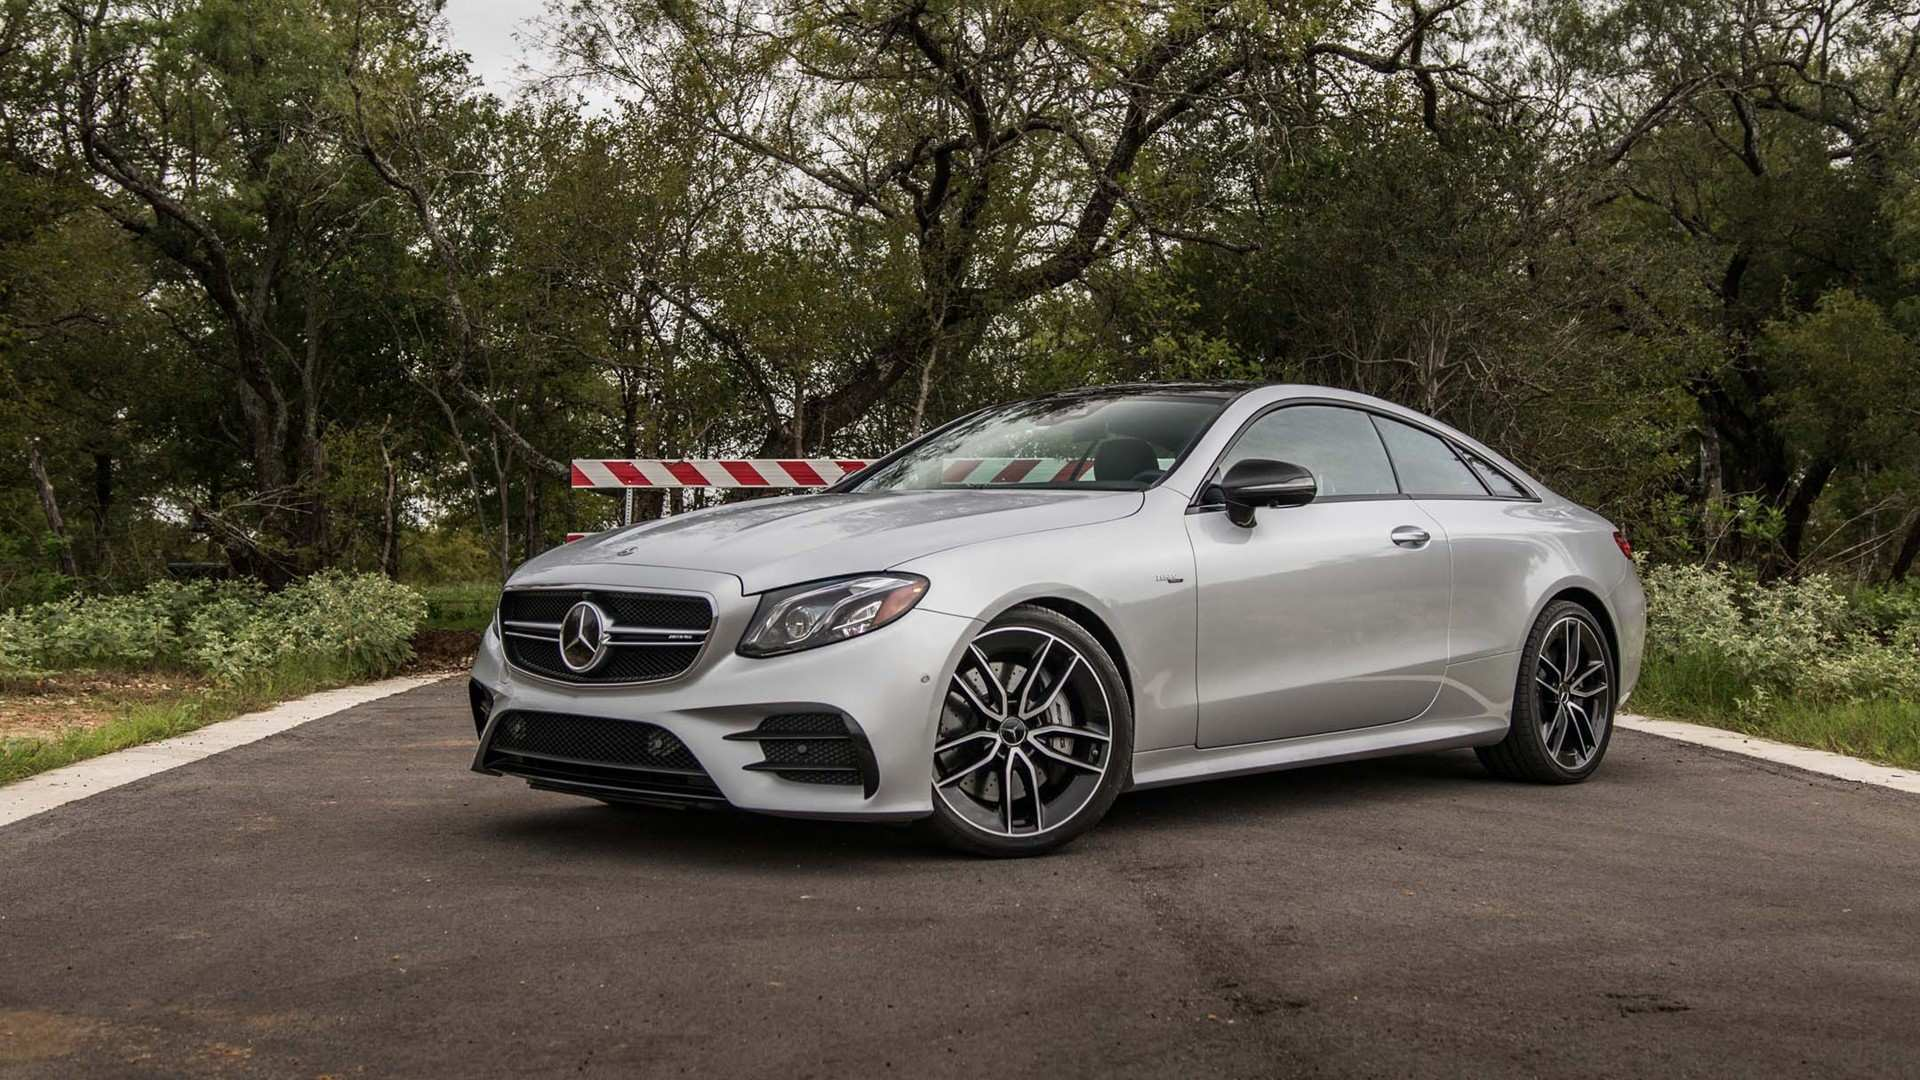 64 Best Review Mercedes E450 Coupe 2020 Style for Mercedes E450 Coupe 2020